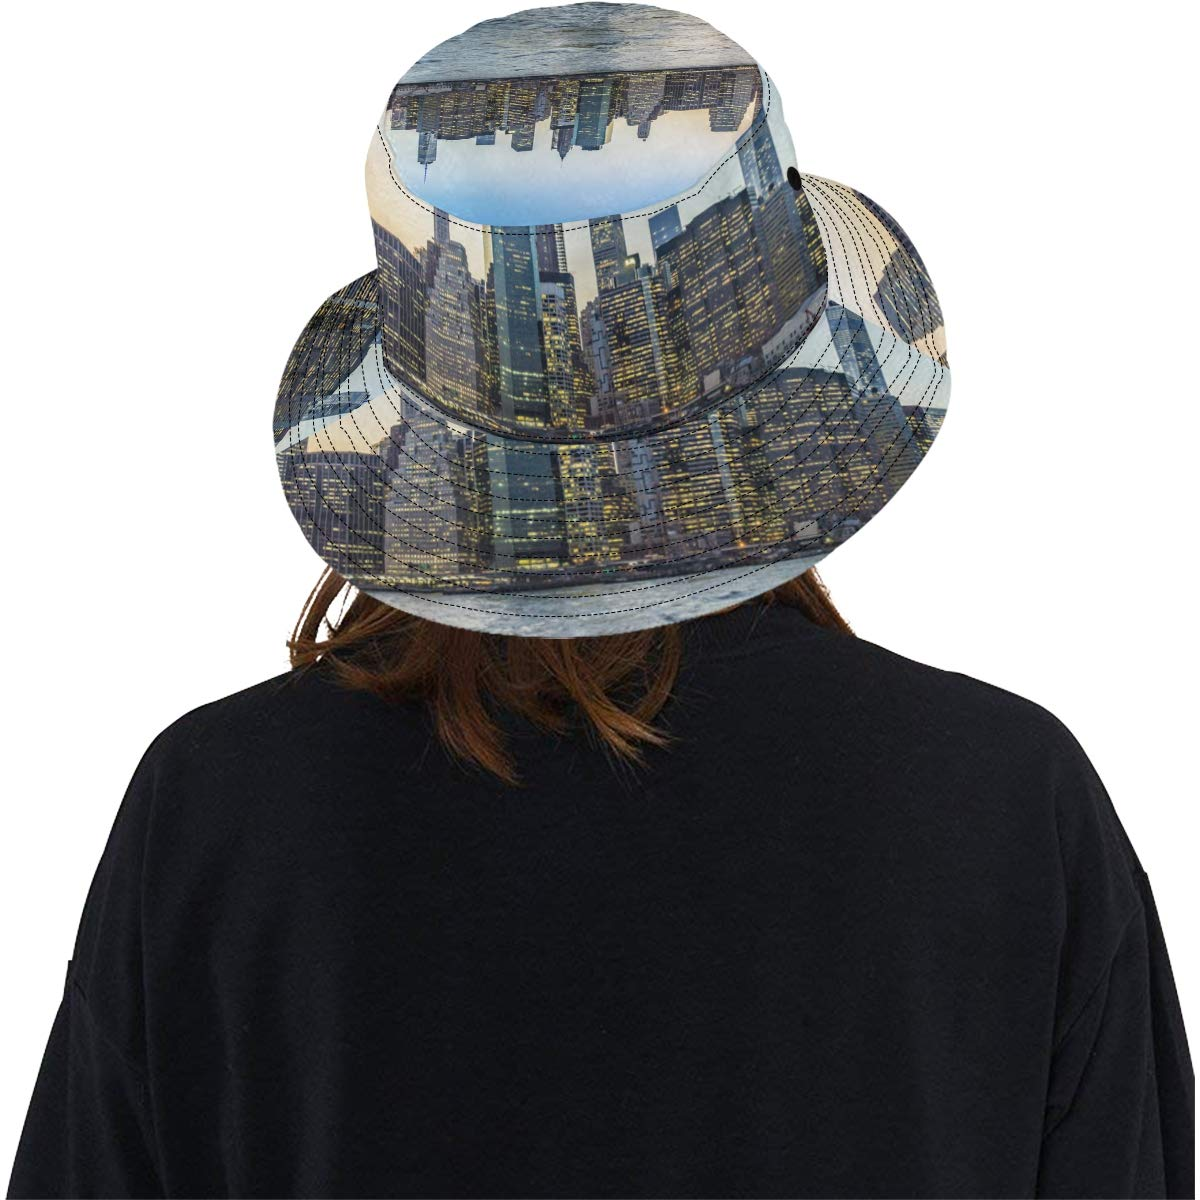 Beautiful City Skyline New Summer Unisex Cotton Fashion Fishing Sun Bucket Hats for Kid Teens Women and Men with Customize Top Packable Fisherman Cap for Outdoor Travel